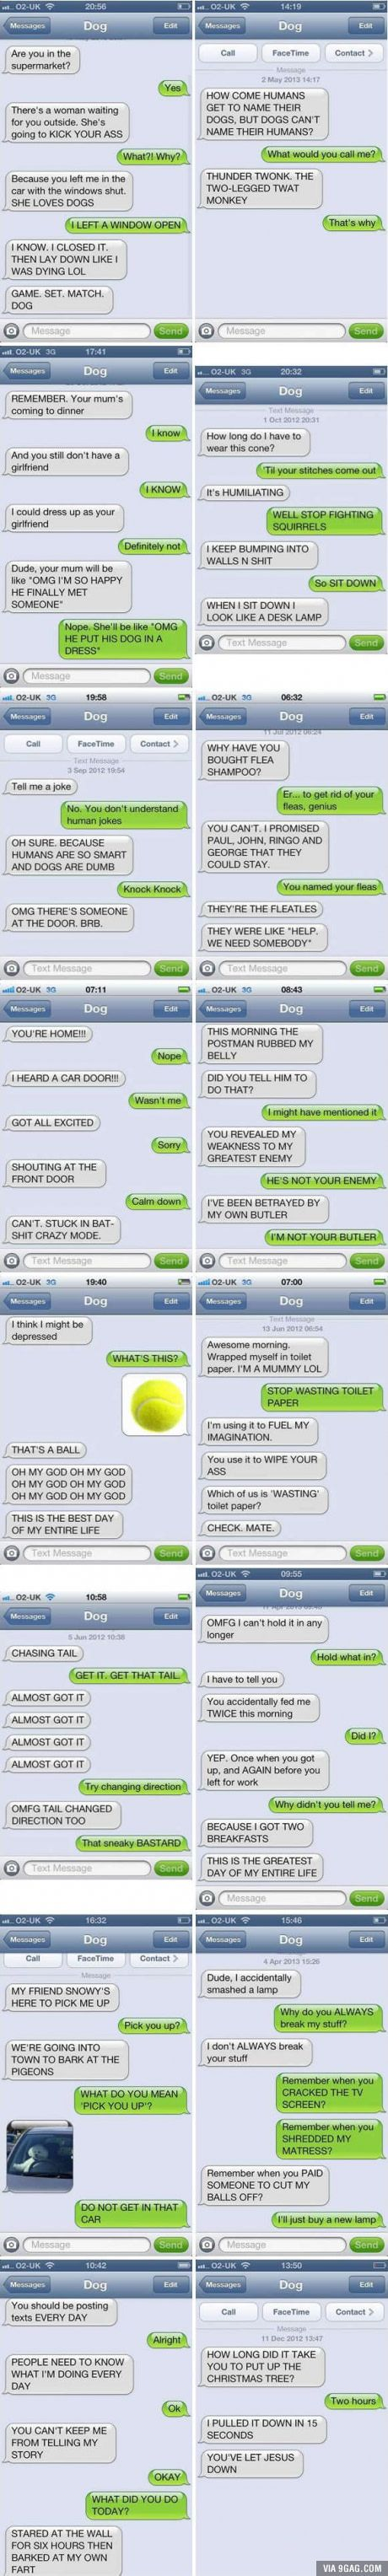 If Your Dog Knew How To Text, These Would Be Your Conversations.